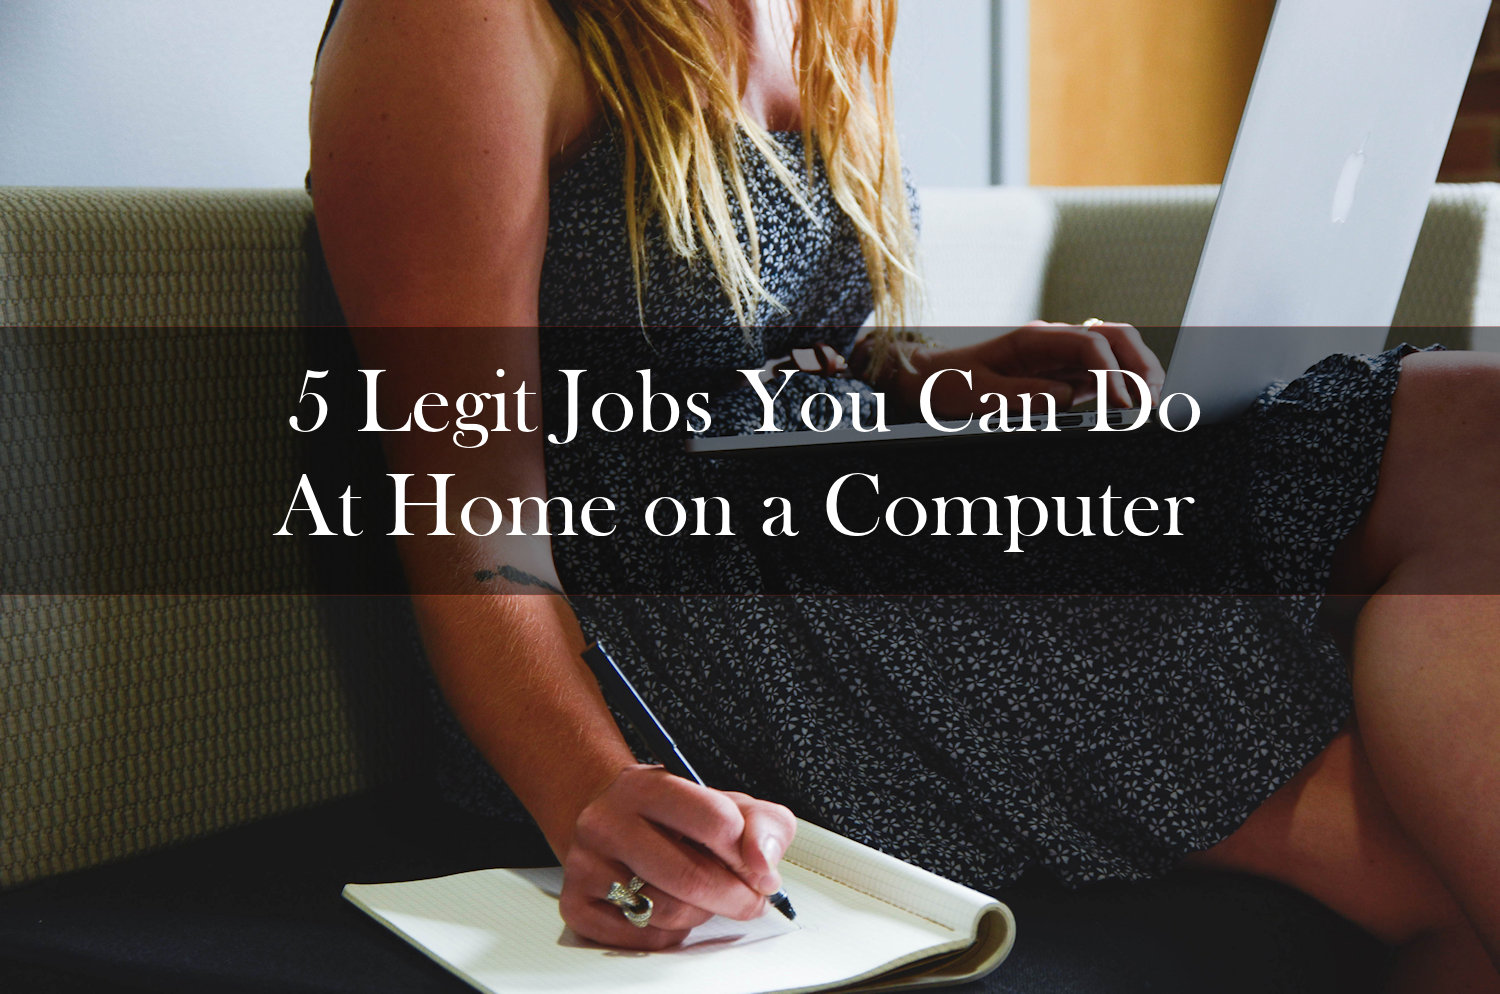 jobs at home on a computer